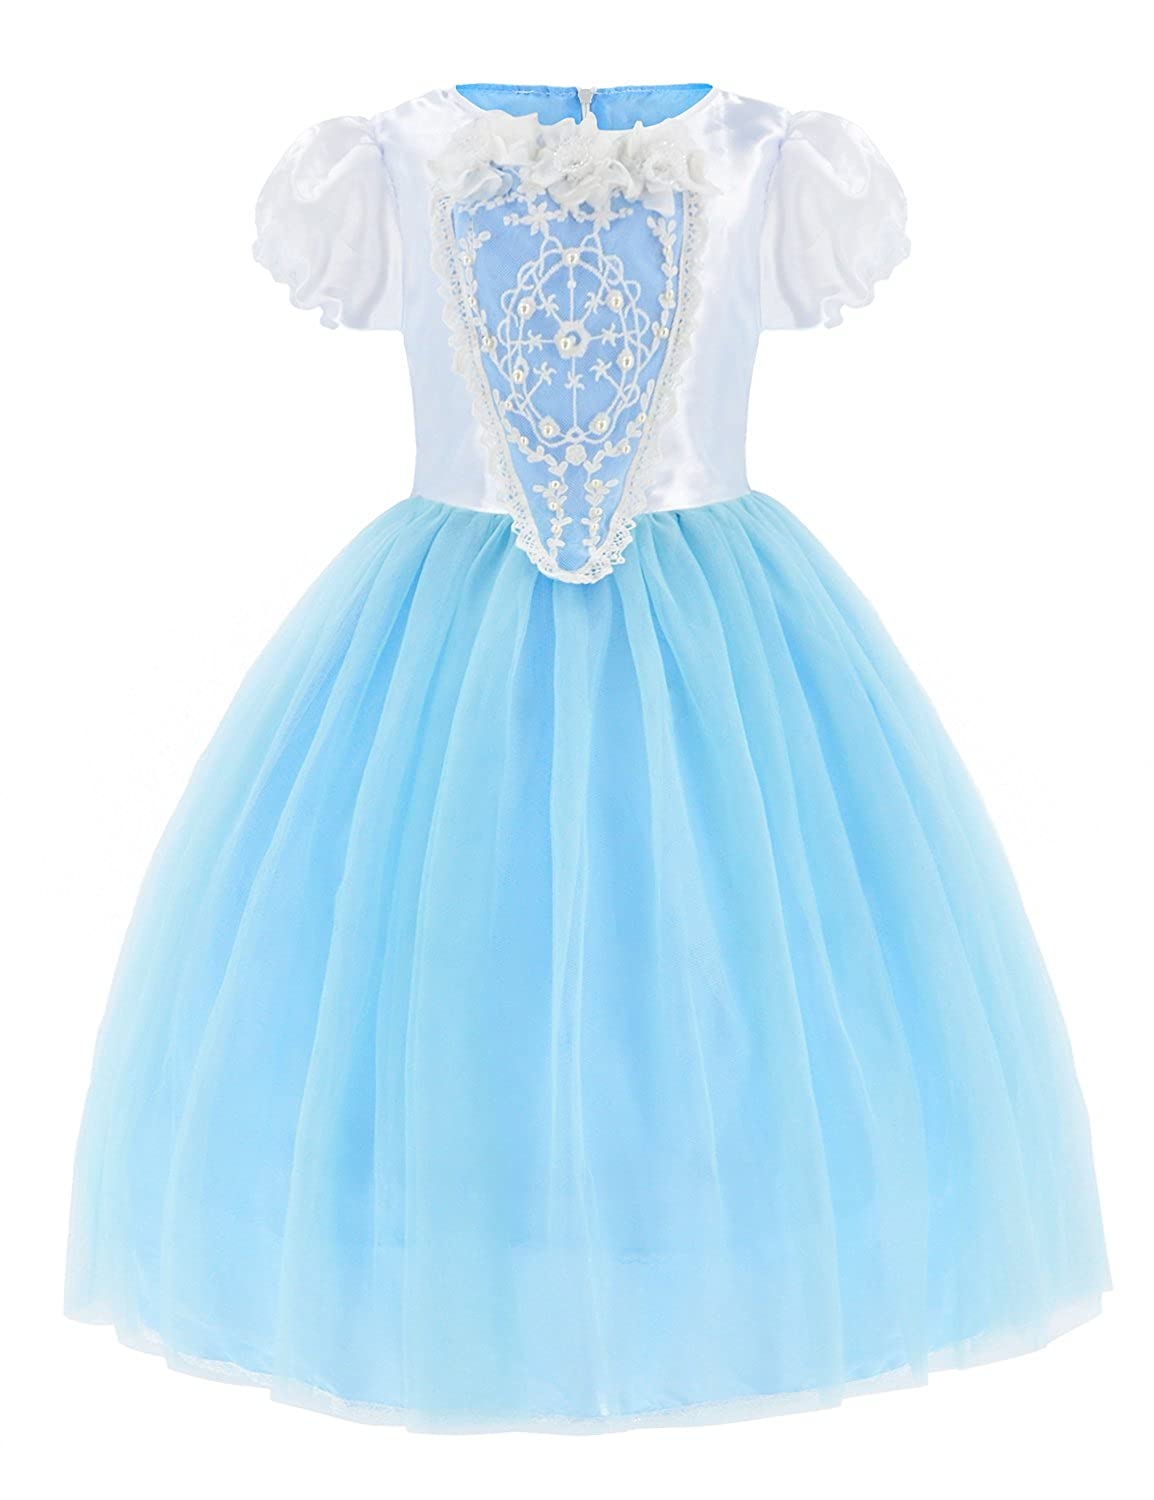 Princess Costumes Fancy Party Birthday,Christmas Dress Up for Little Girls with Accessories 2-11 Years